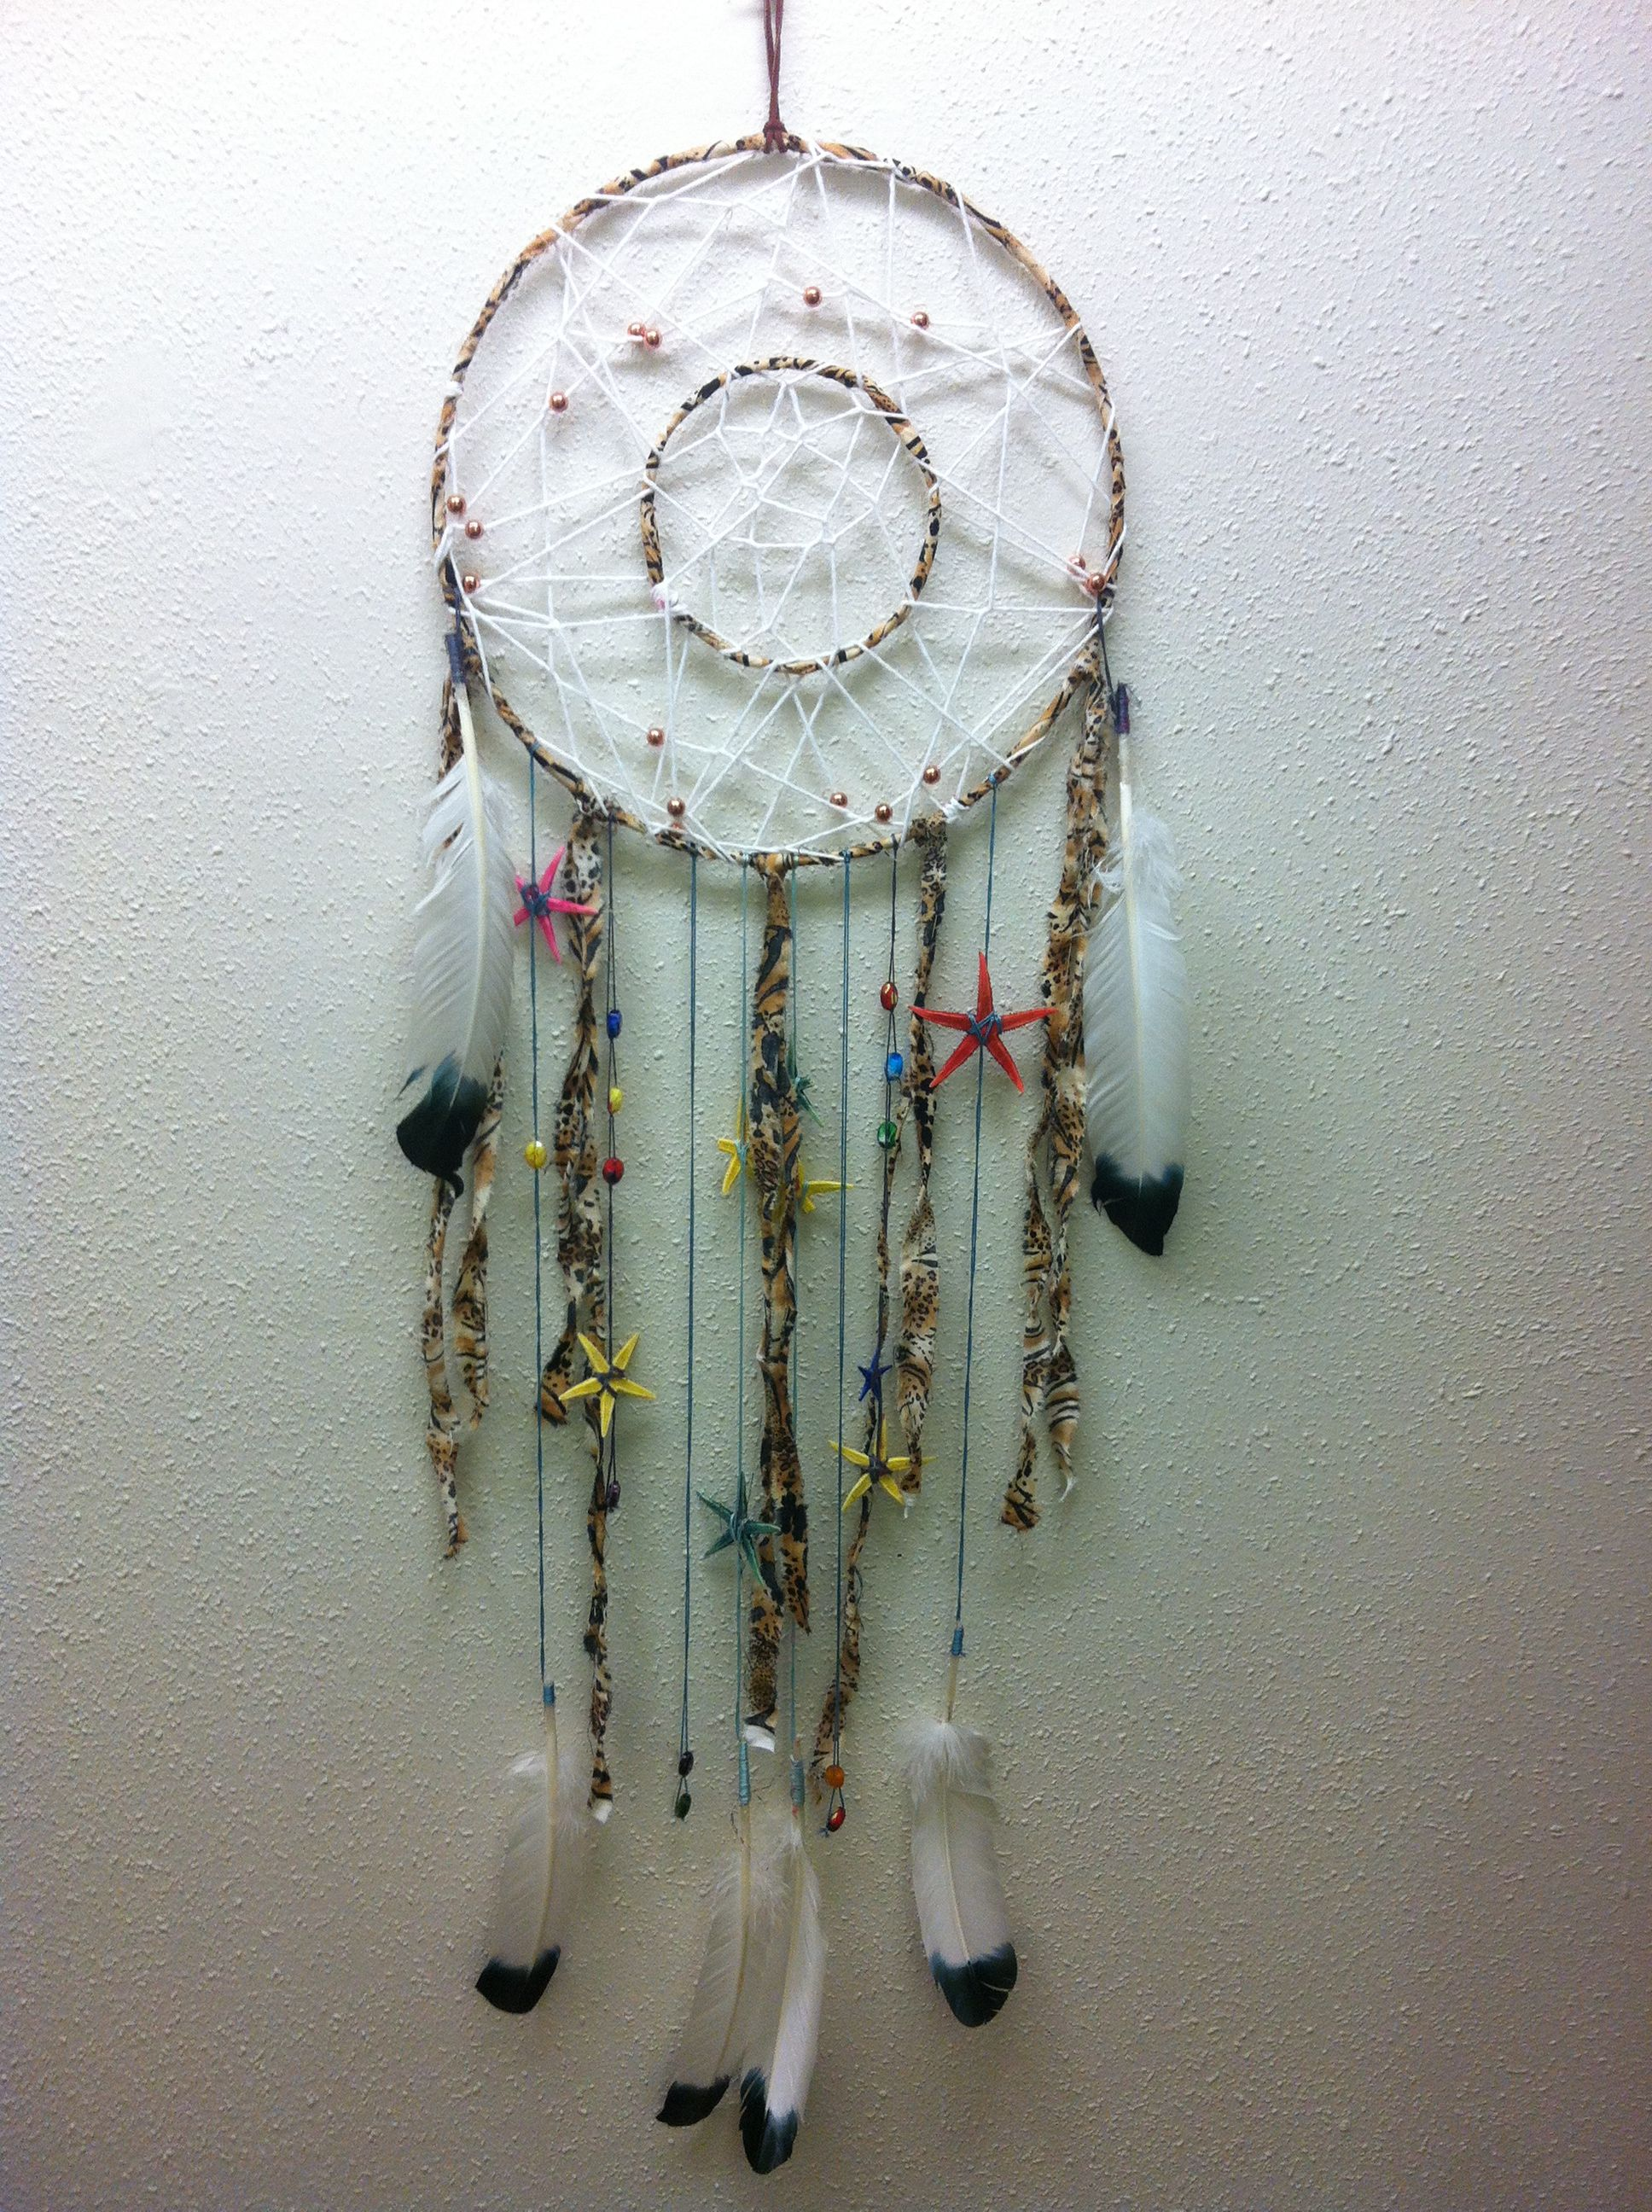 What Are Dream Catchers Supposed To Do i wanna do my own homemade dream catcher catch a dream 29